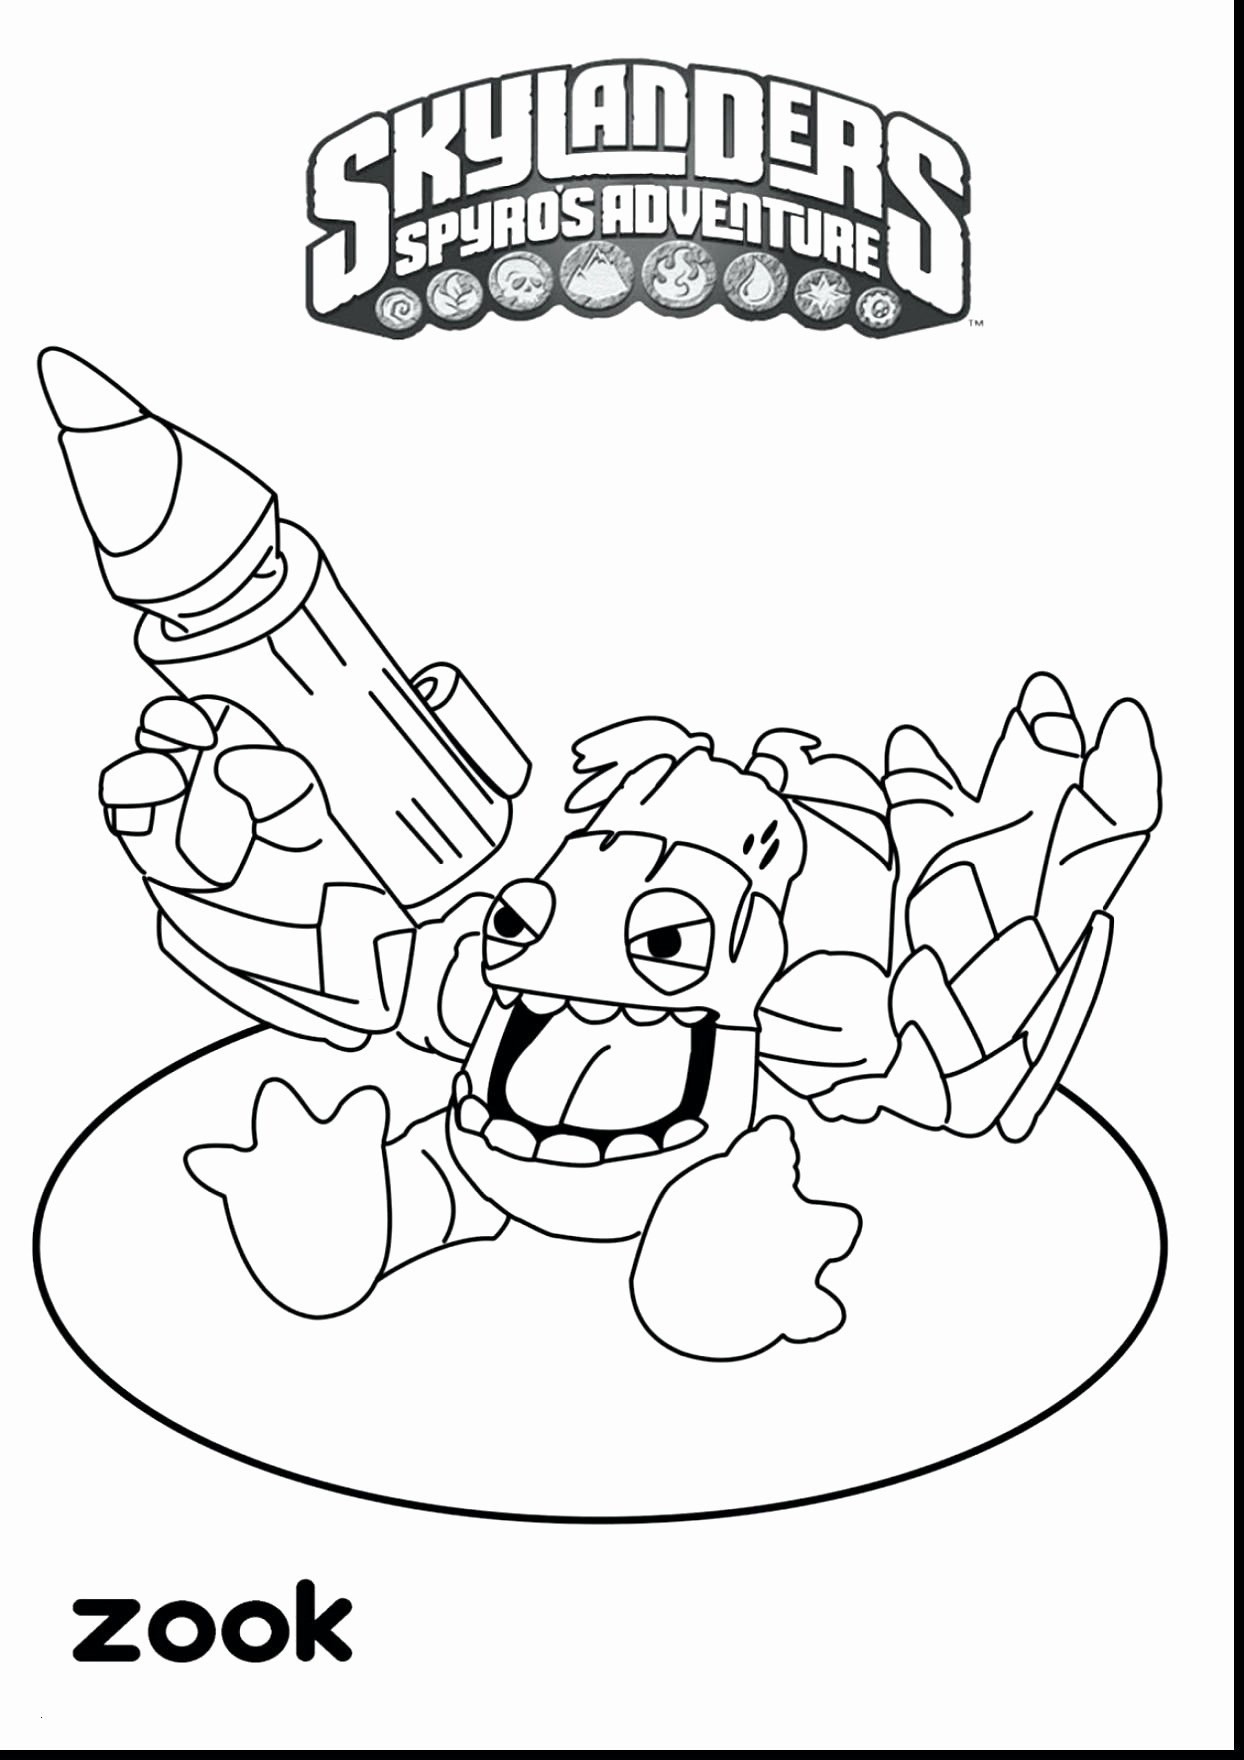 First Aid Coloring Pages  Download 5j - Save it to your computer